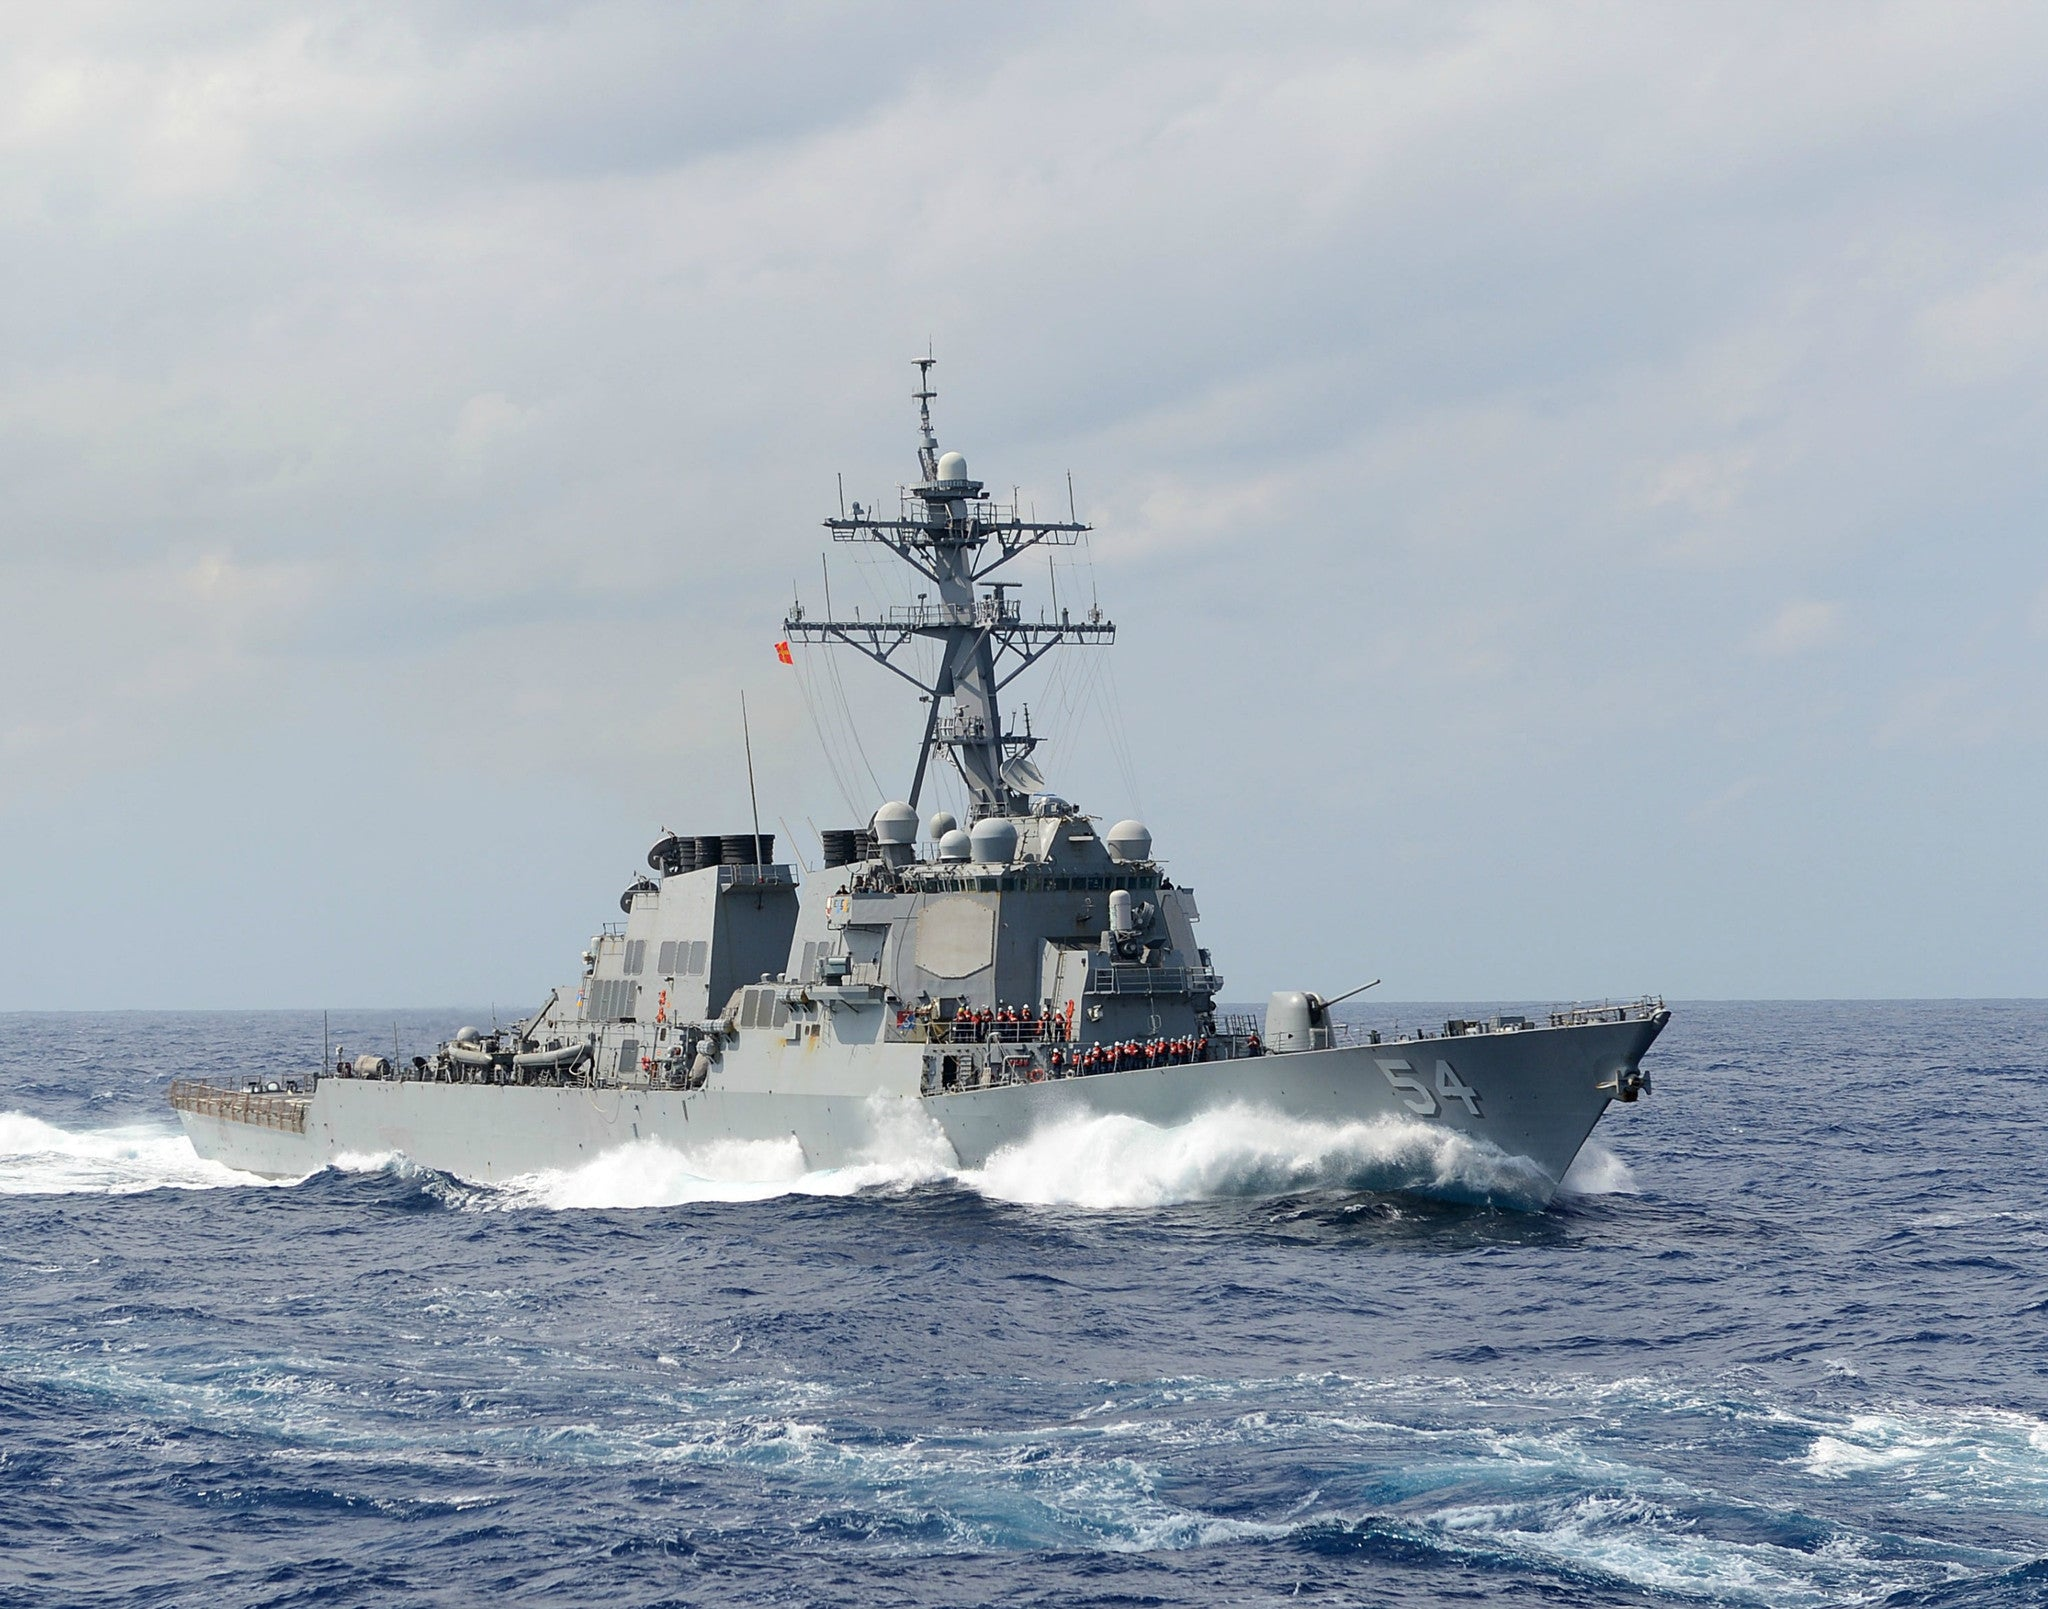 "USS Curtis Wilbur DDG-54 East China Sea September 27, 2013 - 8 x 10"" Photograph"